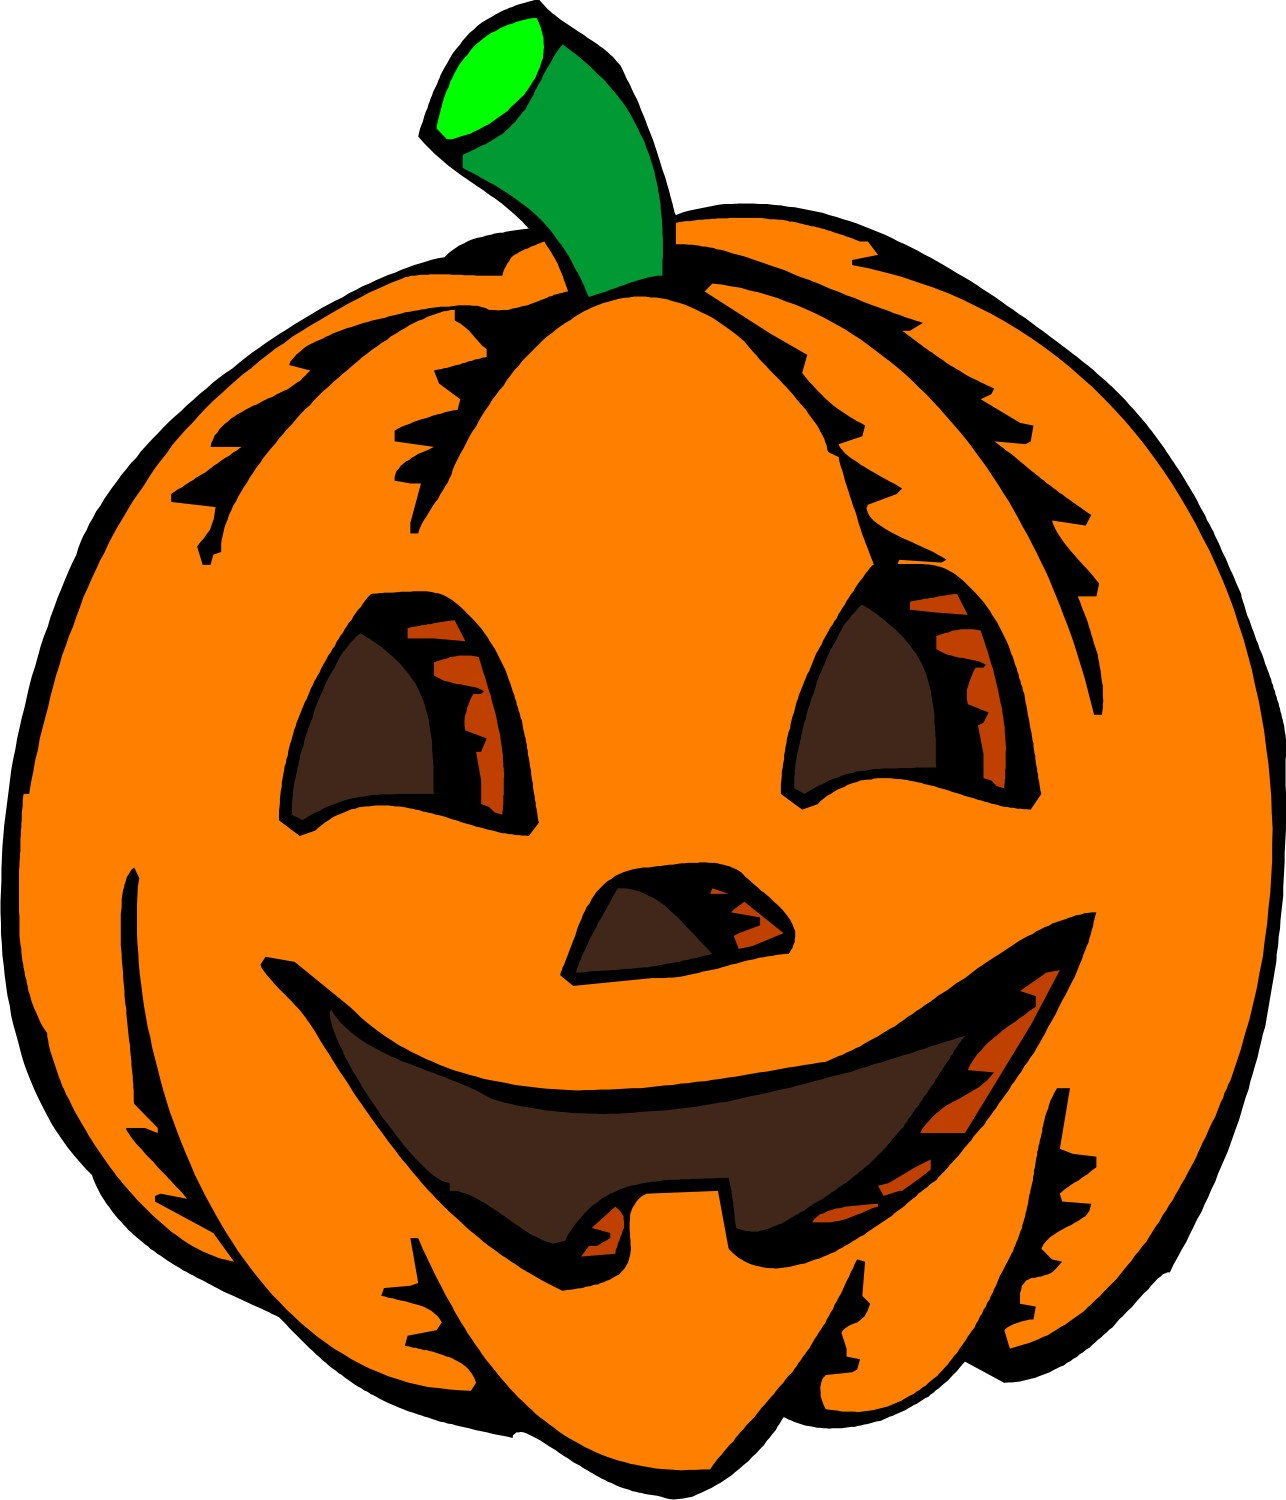 Halloween Pumpkin Clip Art.